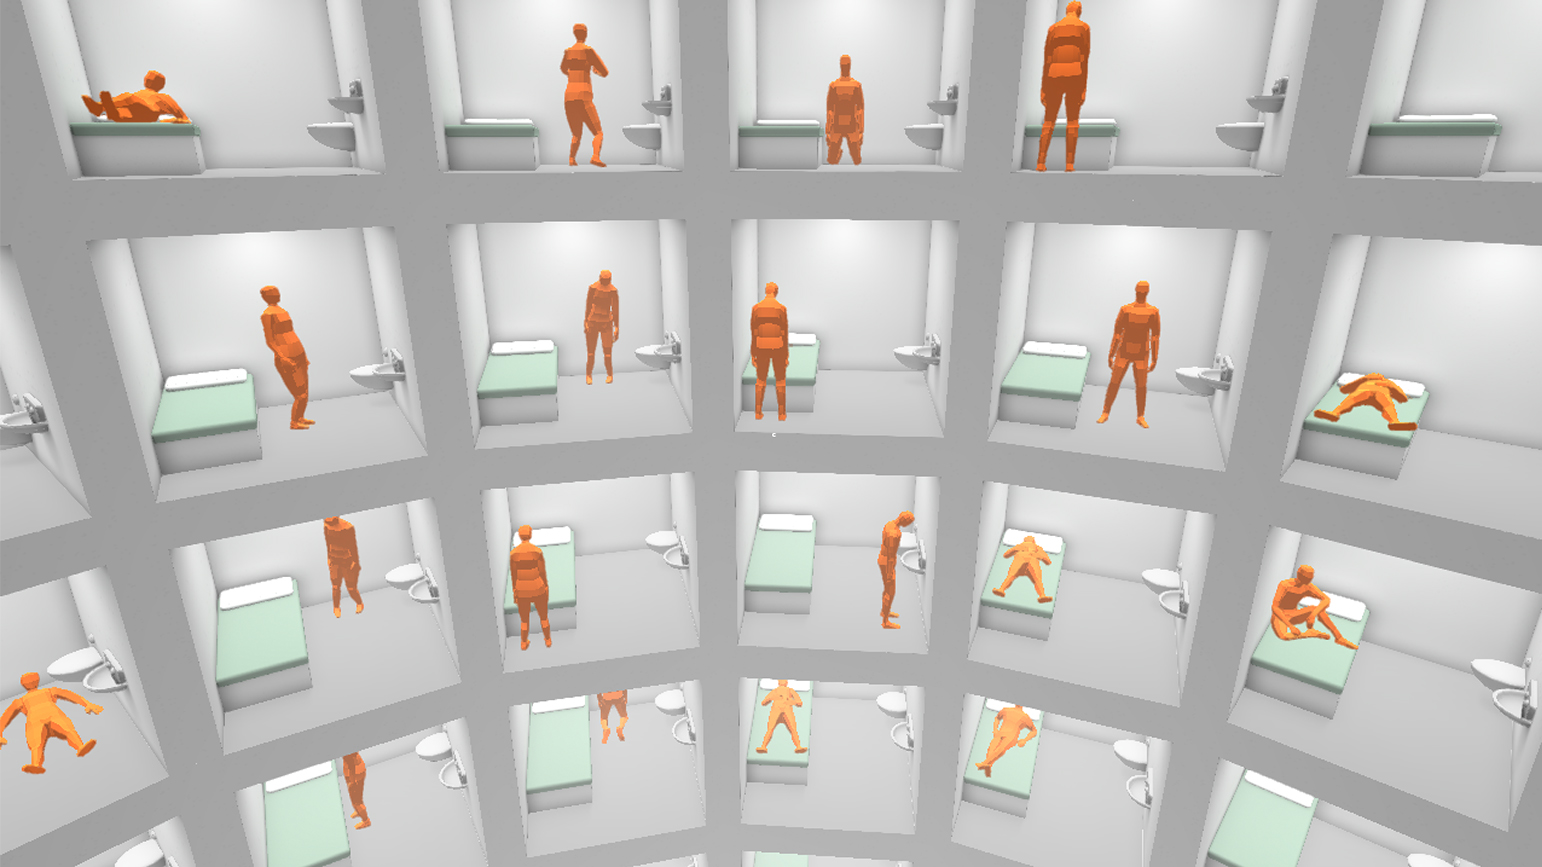 Digital image showing a grid of orange figures in a variety of positions in cells